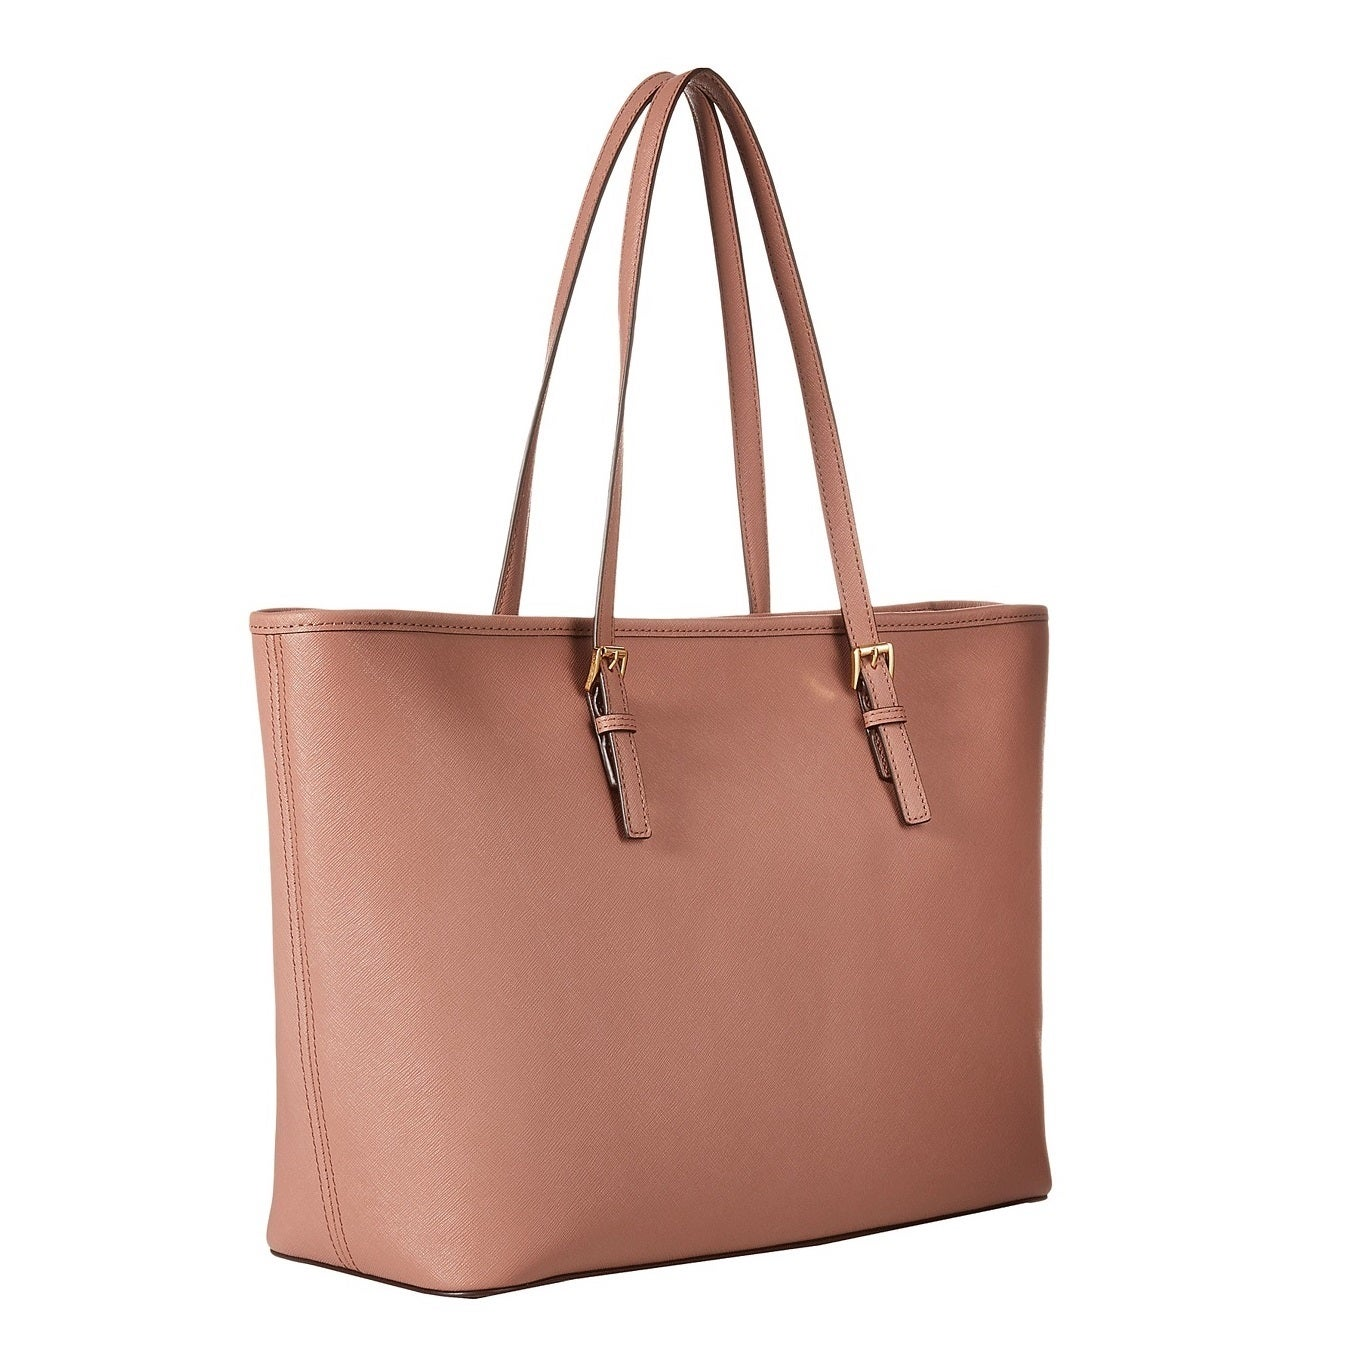 e689350d7e62 Shop Michael Kors Jet Set Medium Saffiano Leather Tote Bag - On Sale - Free  Shipping Today - Overstock - 10701567